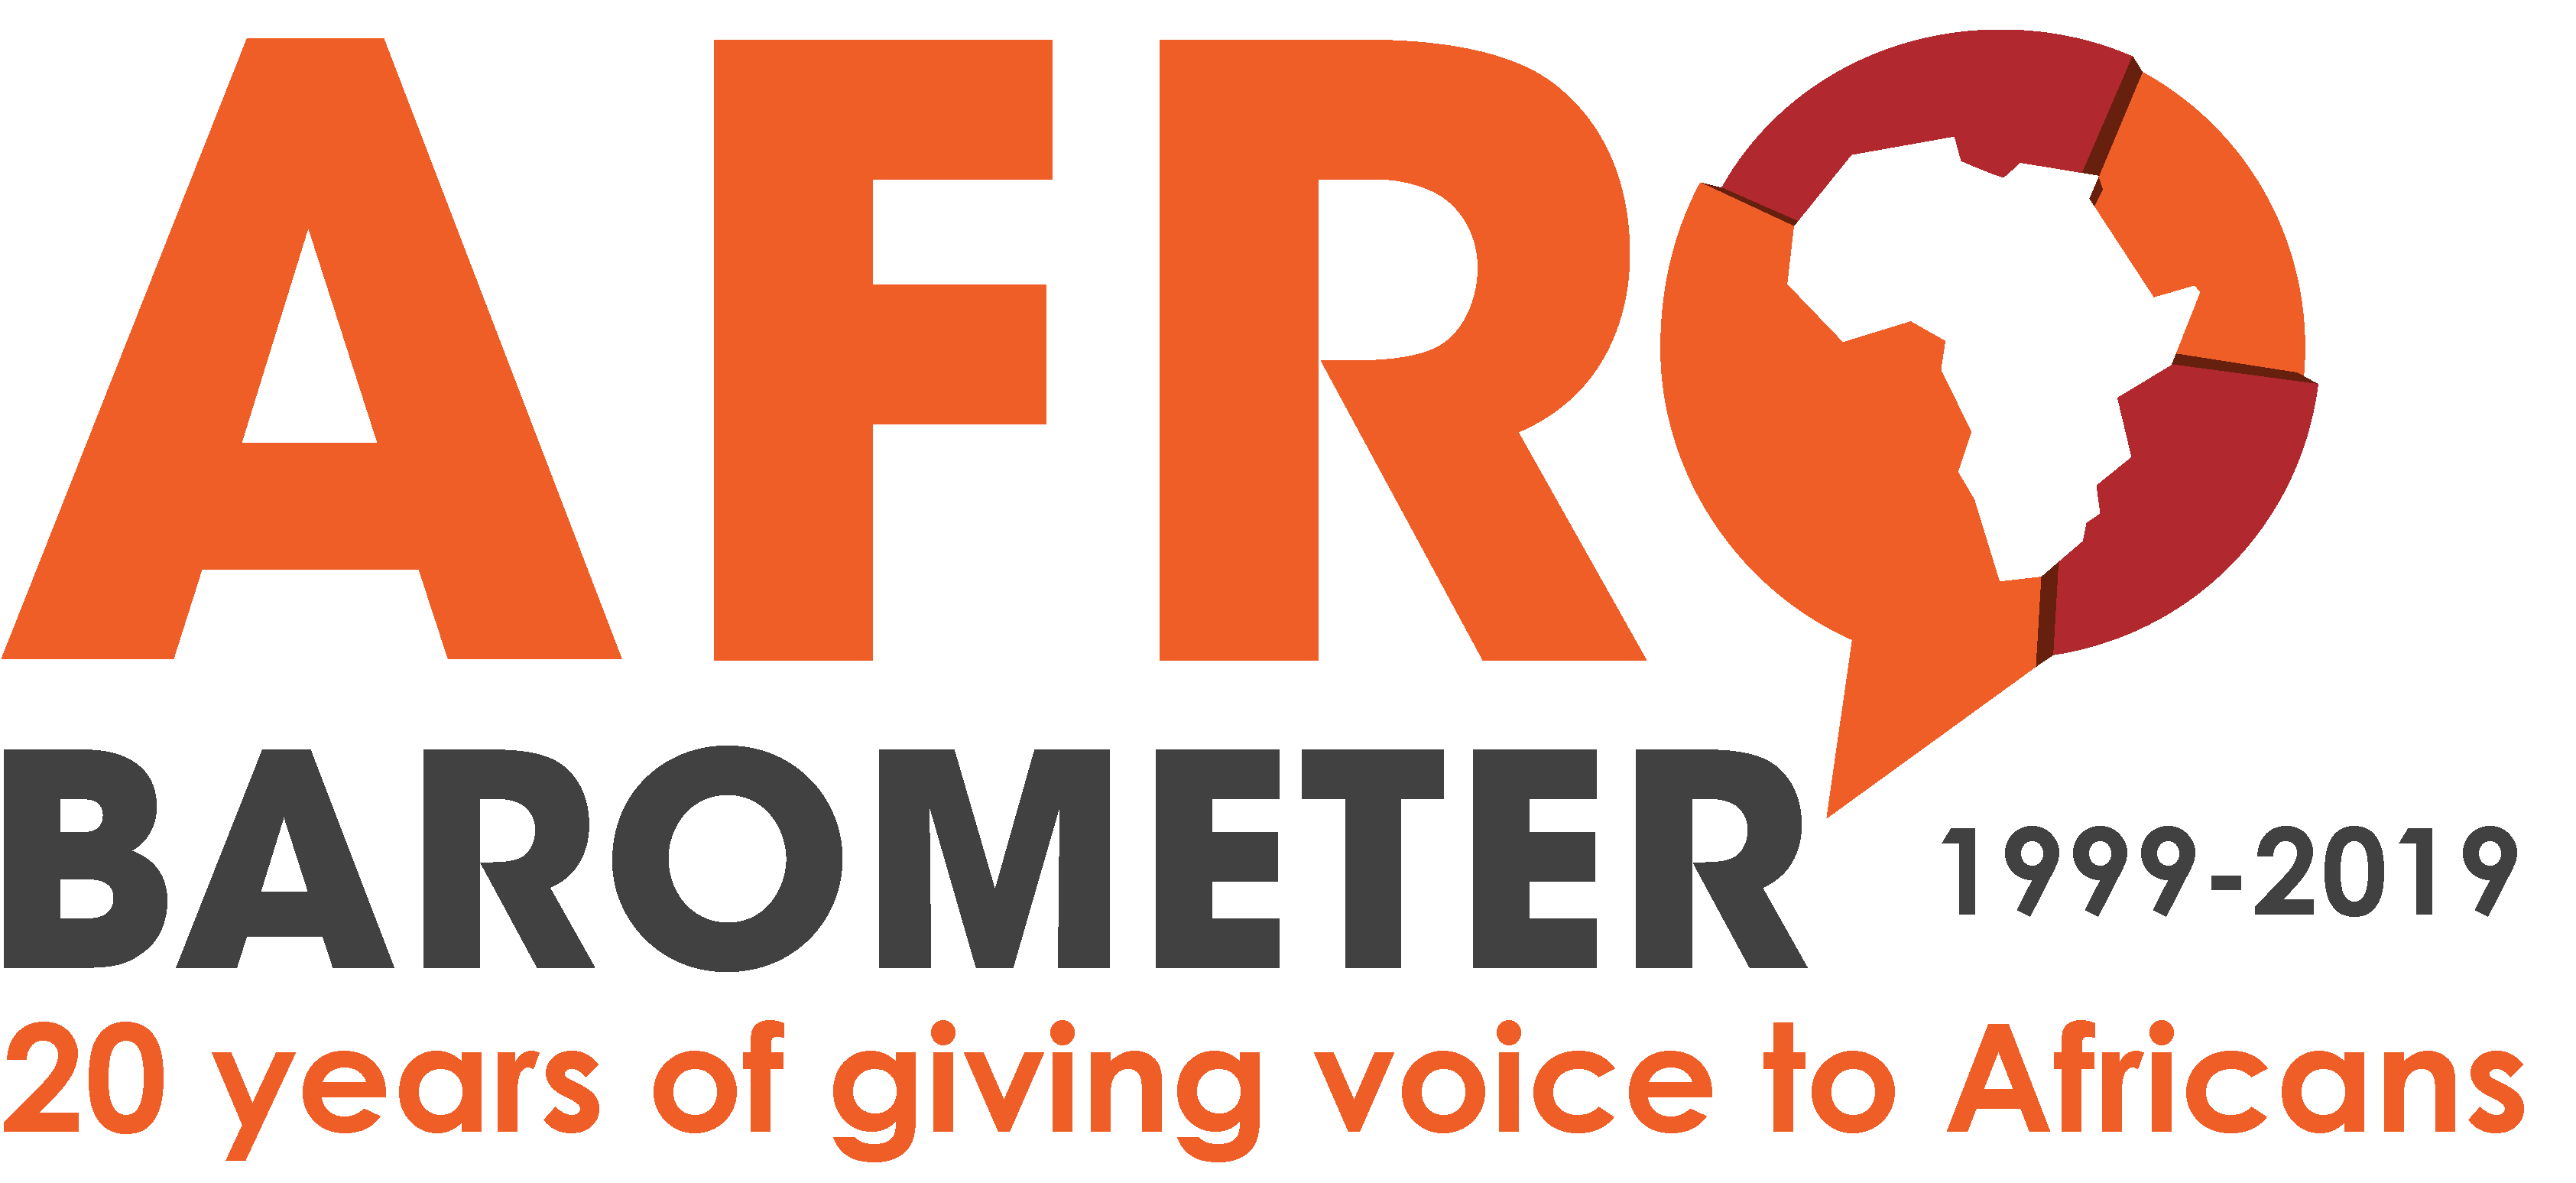 Press release: Afrobarometer lays foundation for 'next generation' of giving voice to African citizens